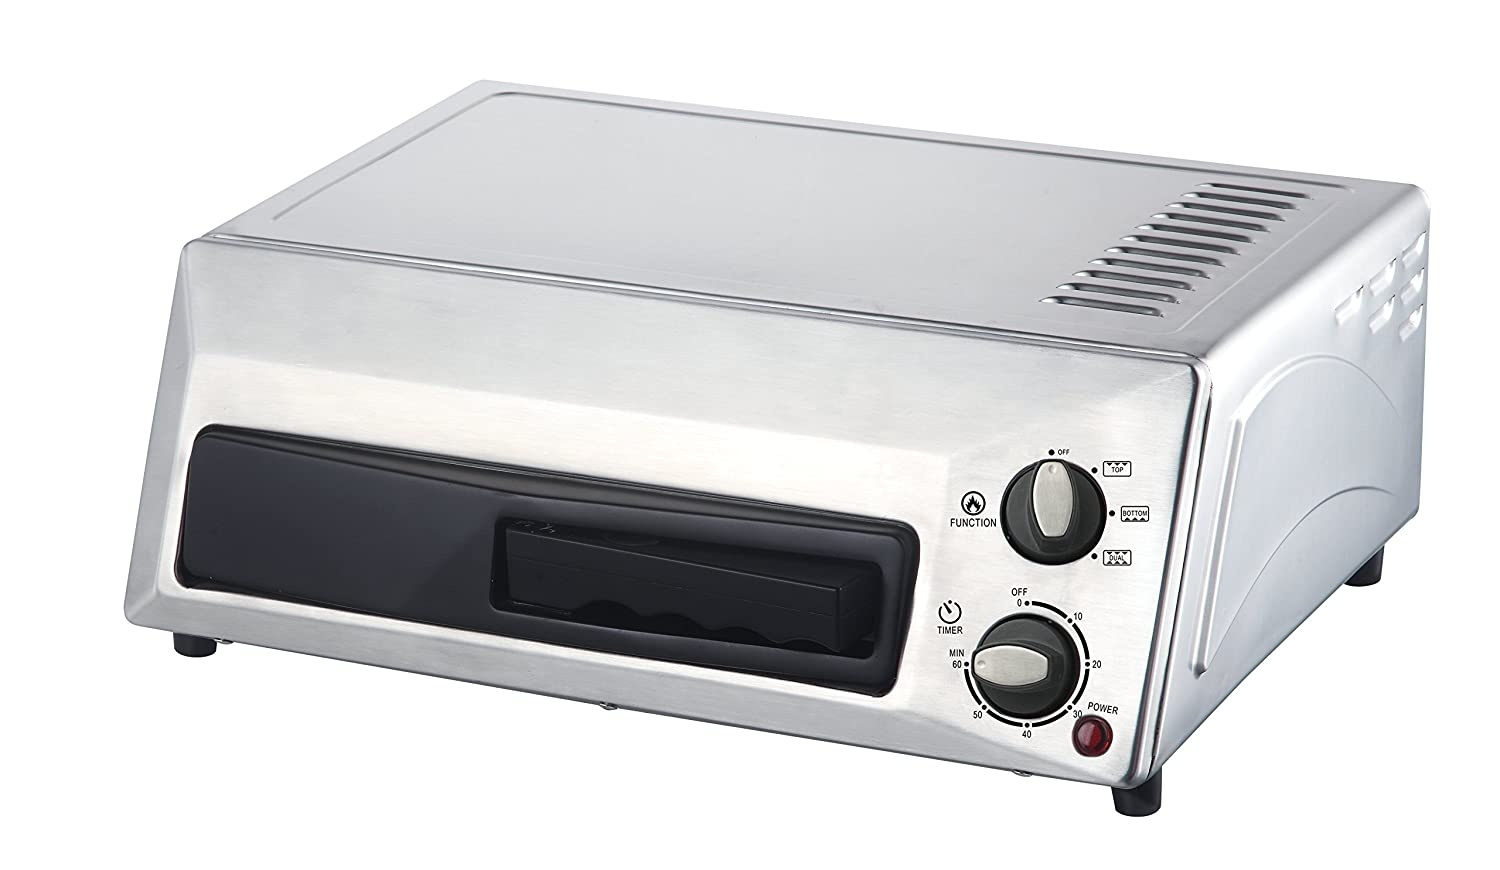 Magic Chef Countertop Pizza Oven HQPZO13ST Stainless Steel, 12 inches